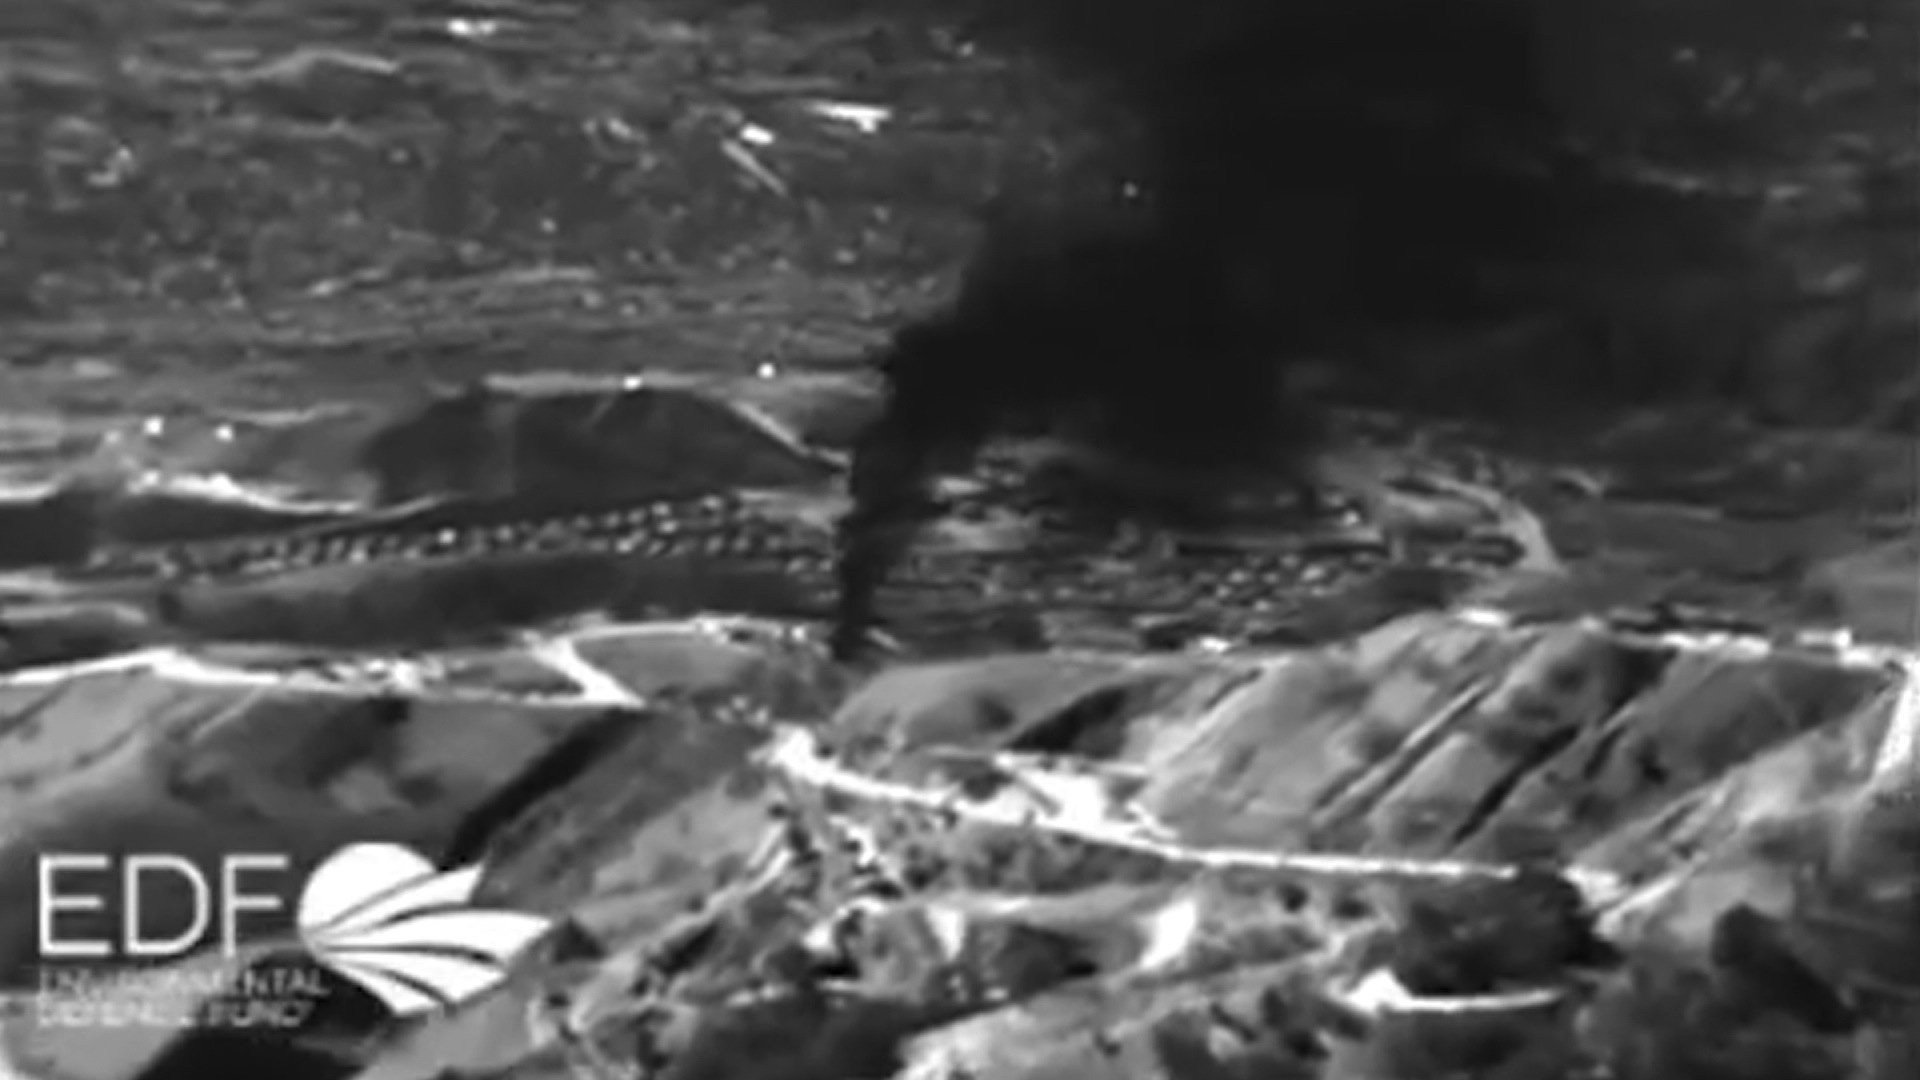 Gov. Jerry Brown declared a state of emergency over the colossal leak near the Los Angeles suburb of Porter Ranch, California. (Photo: Environmental Defense Fund)